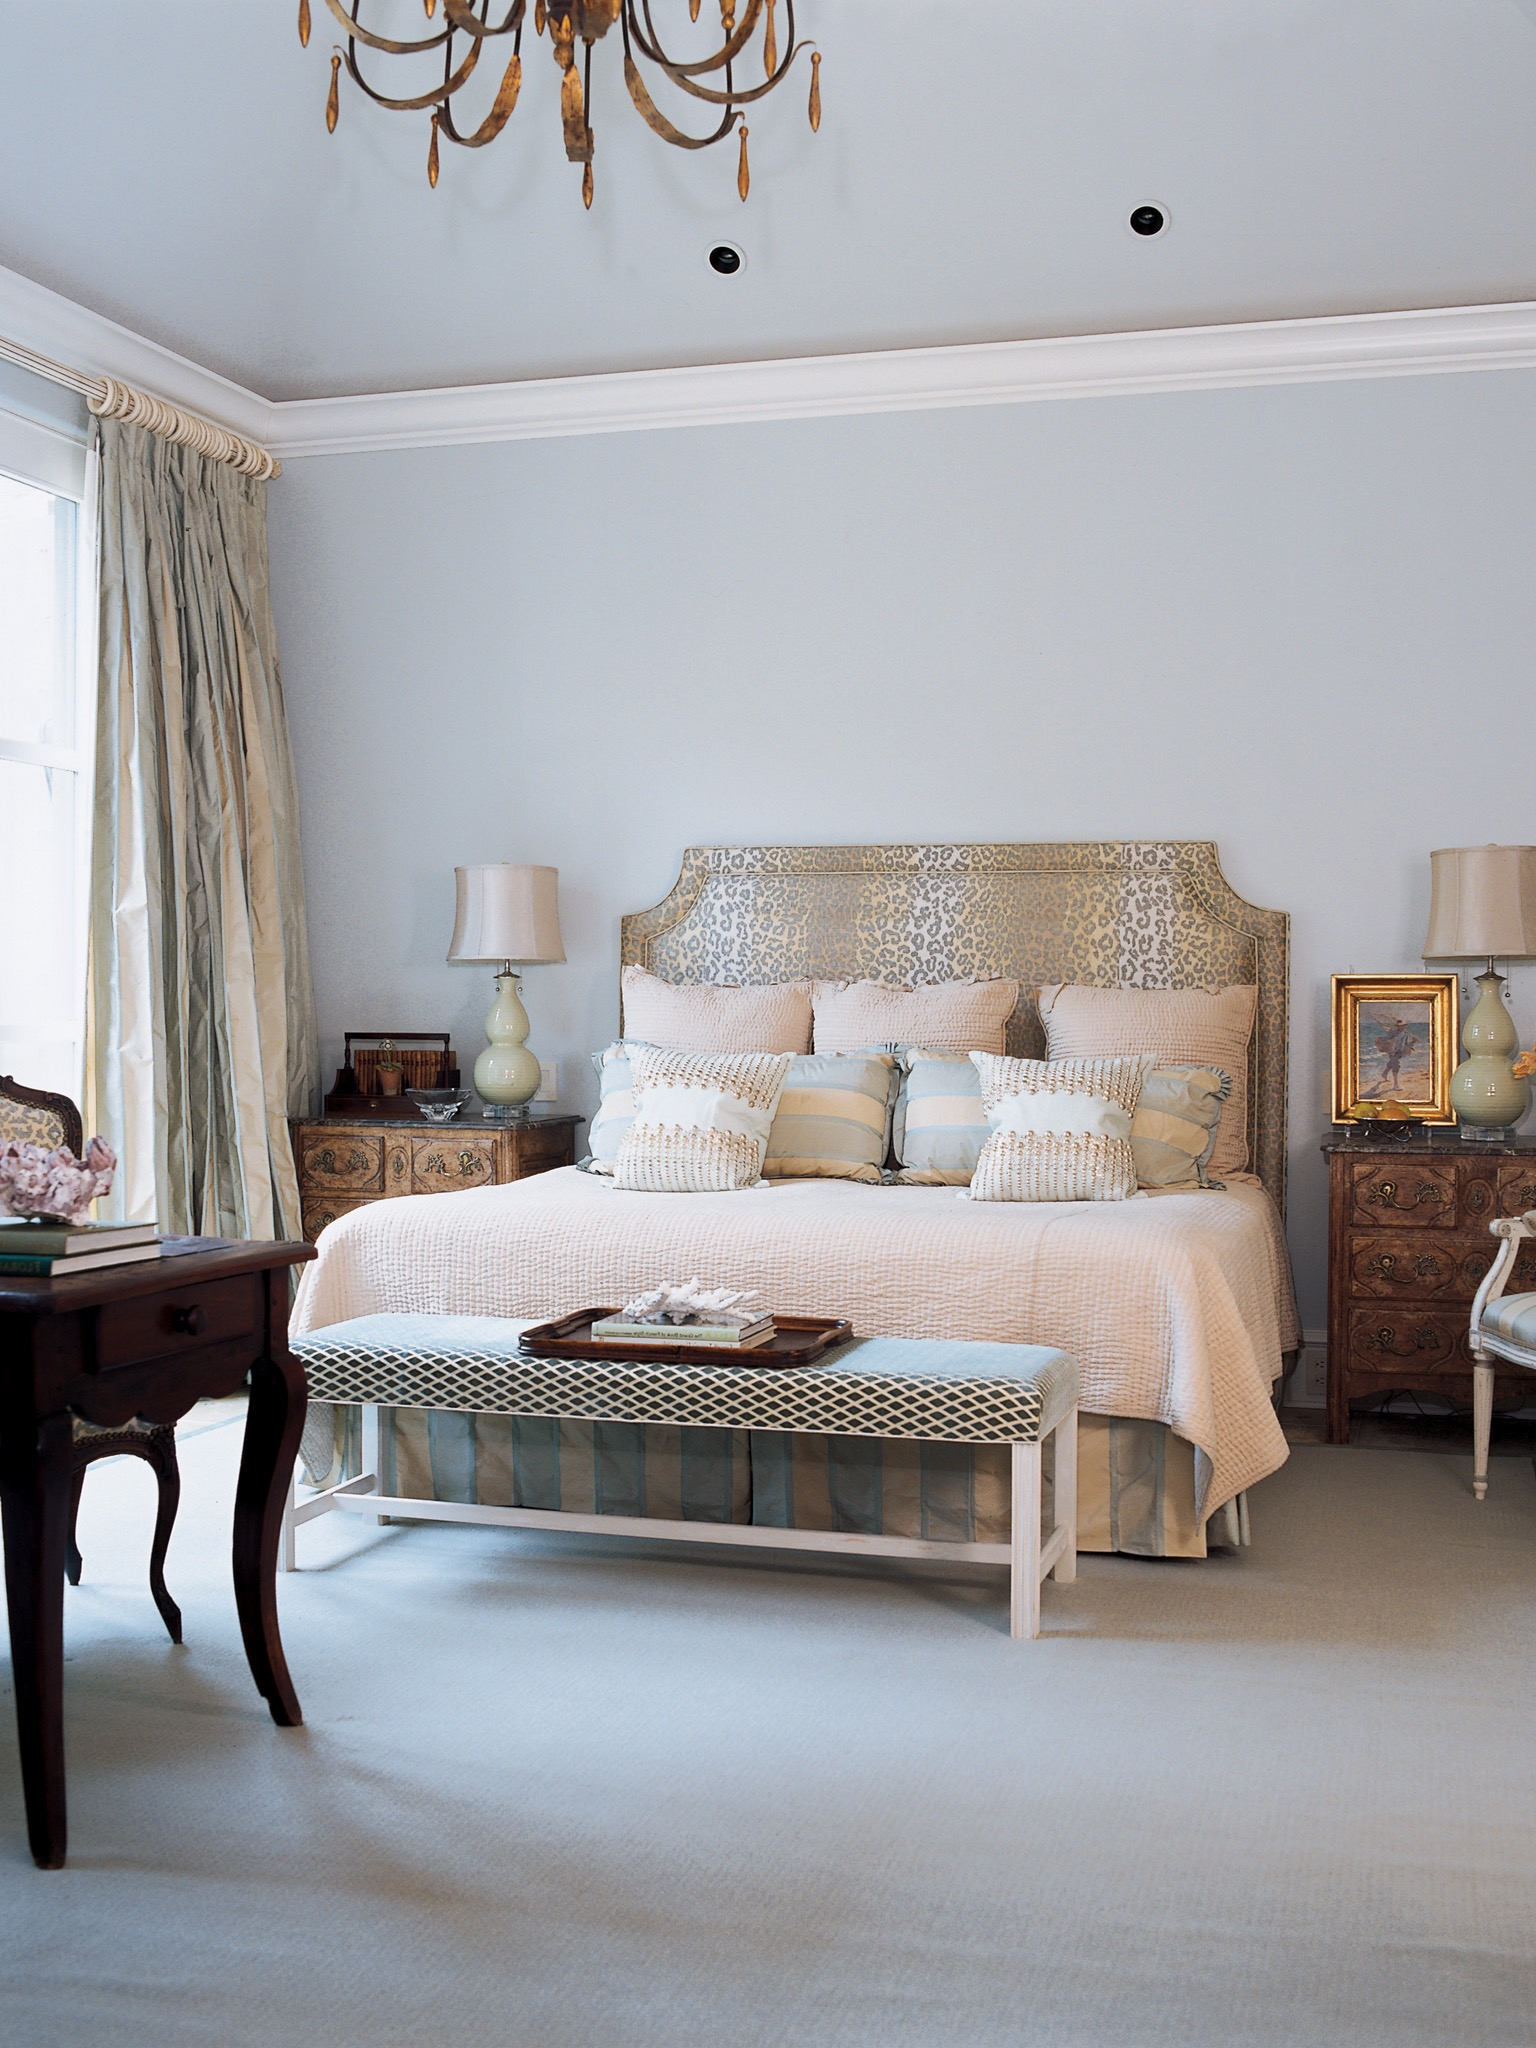 Victorian Bedroom With Patterned Window Treatment And Antique Blue Accent Table (View 12 of 19)